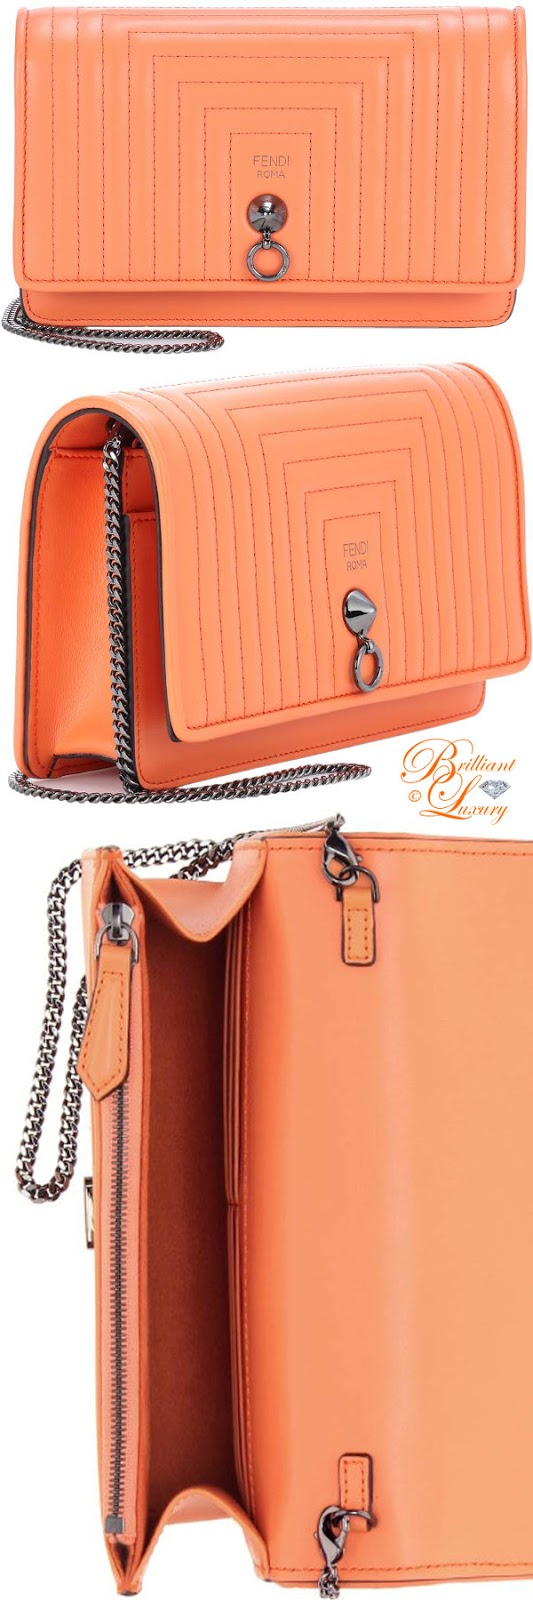 Brilliant Luxury ♦ Fendi small flap leather shoulder bag #orange